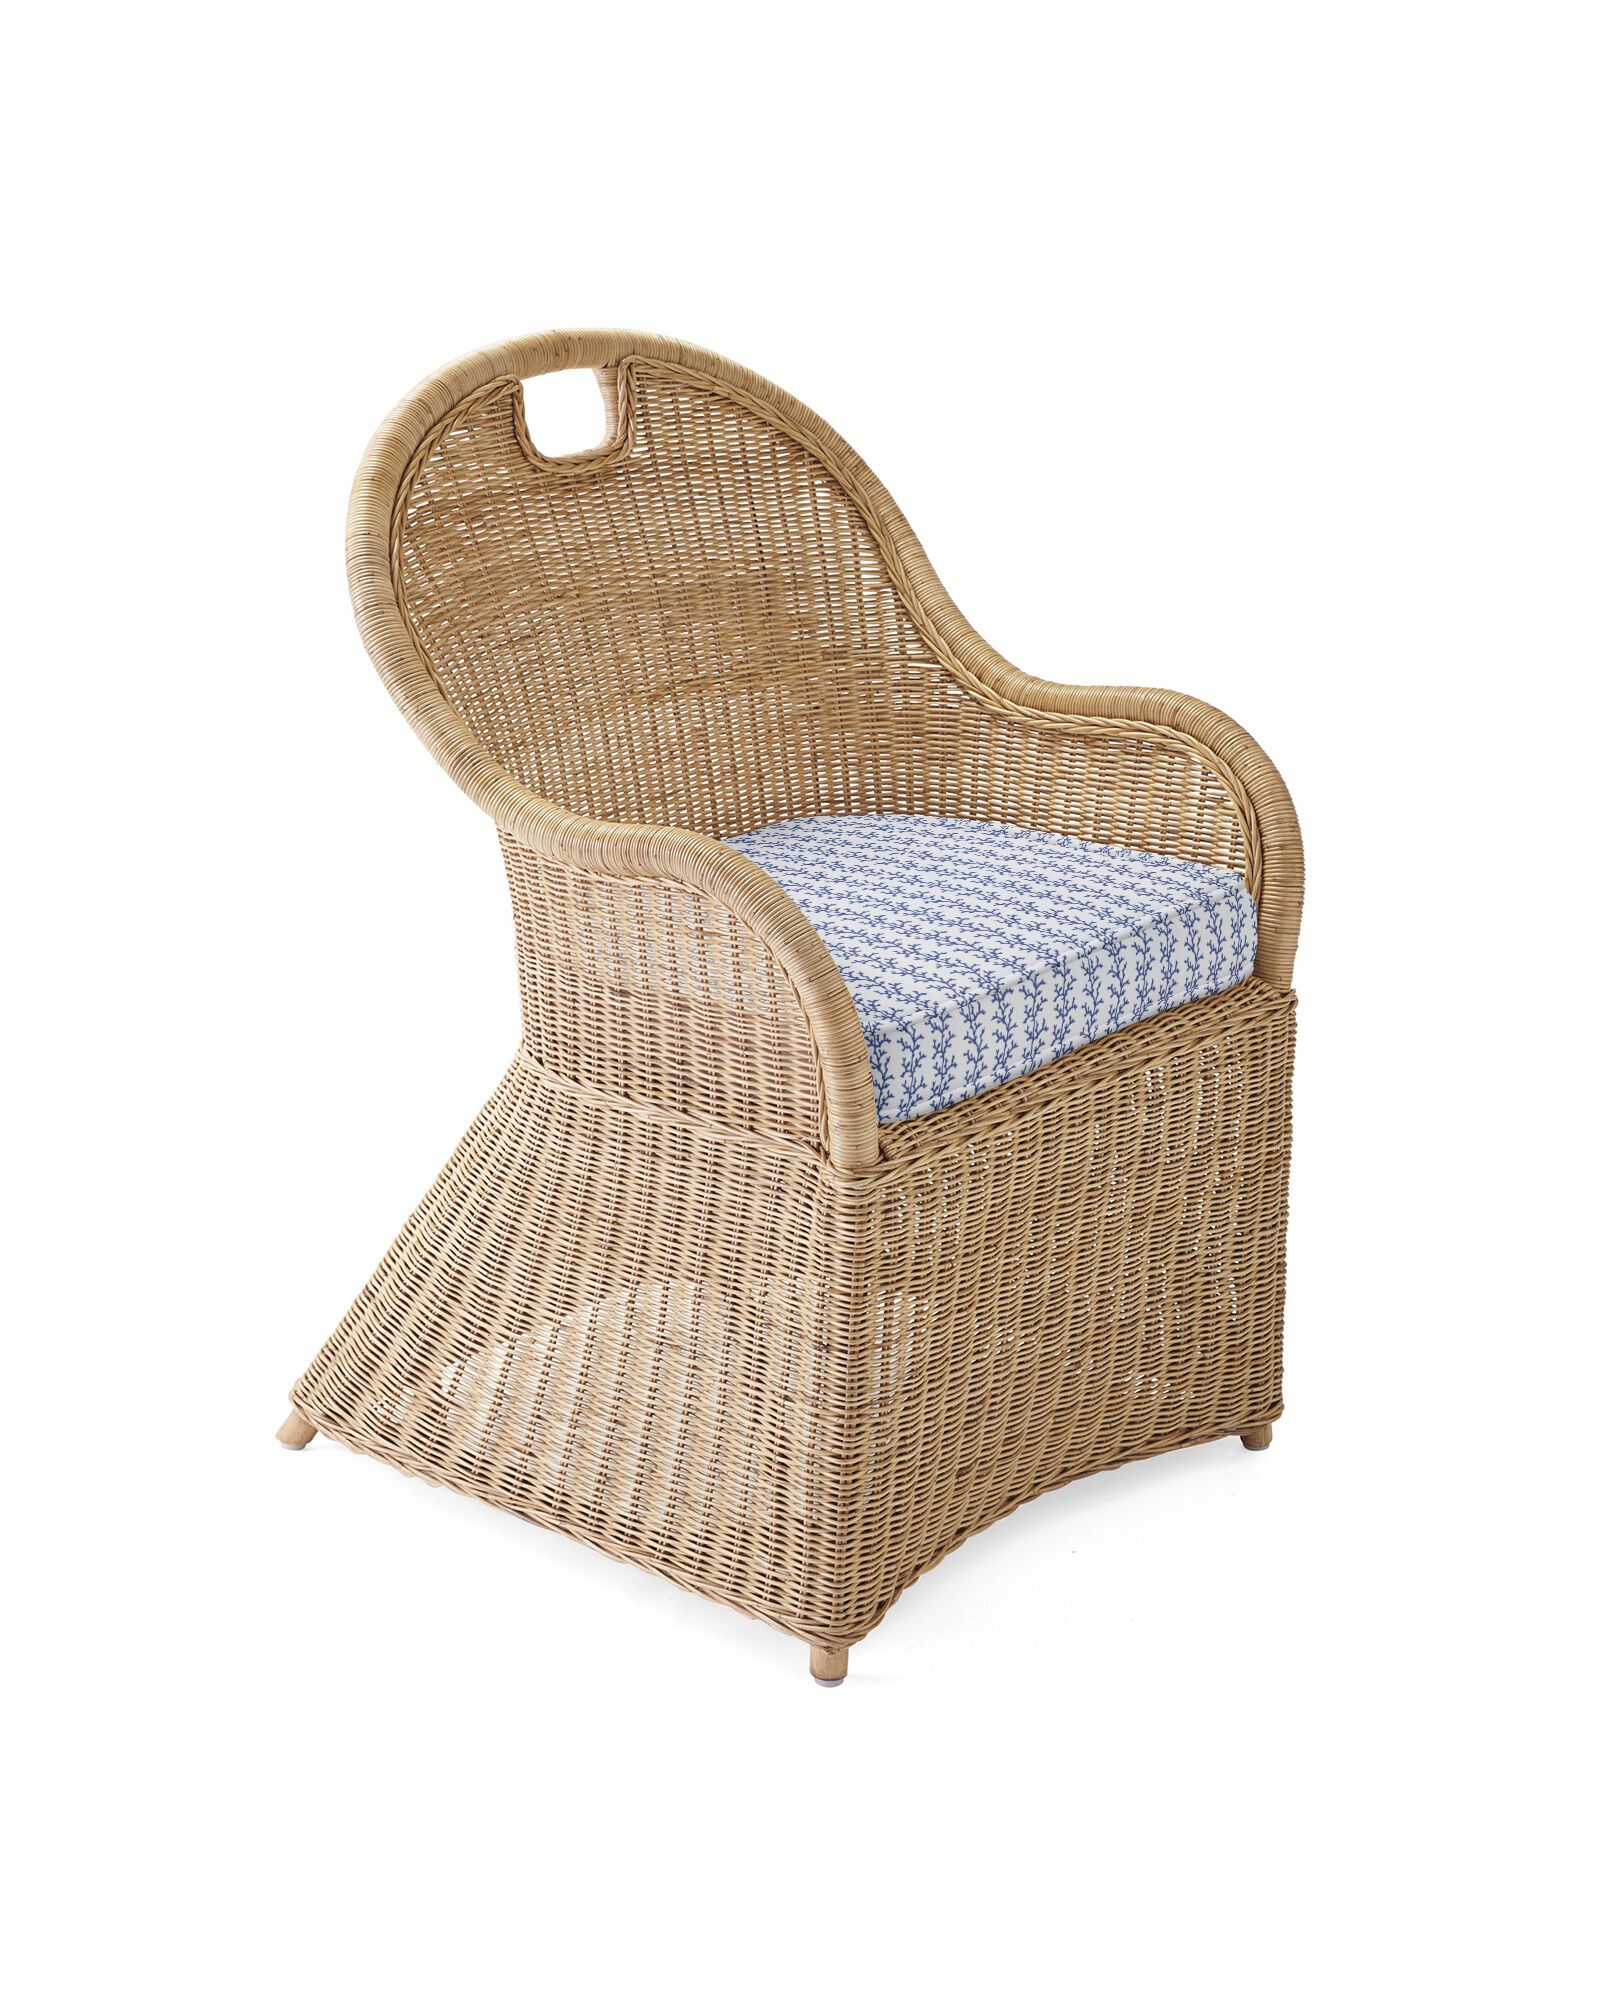 Cushion Cover for Shore Dining Chair & Counter Stool, Beach Bay Linen French Blue